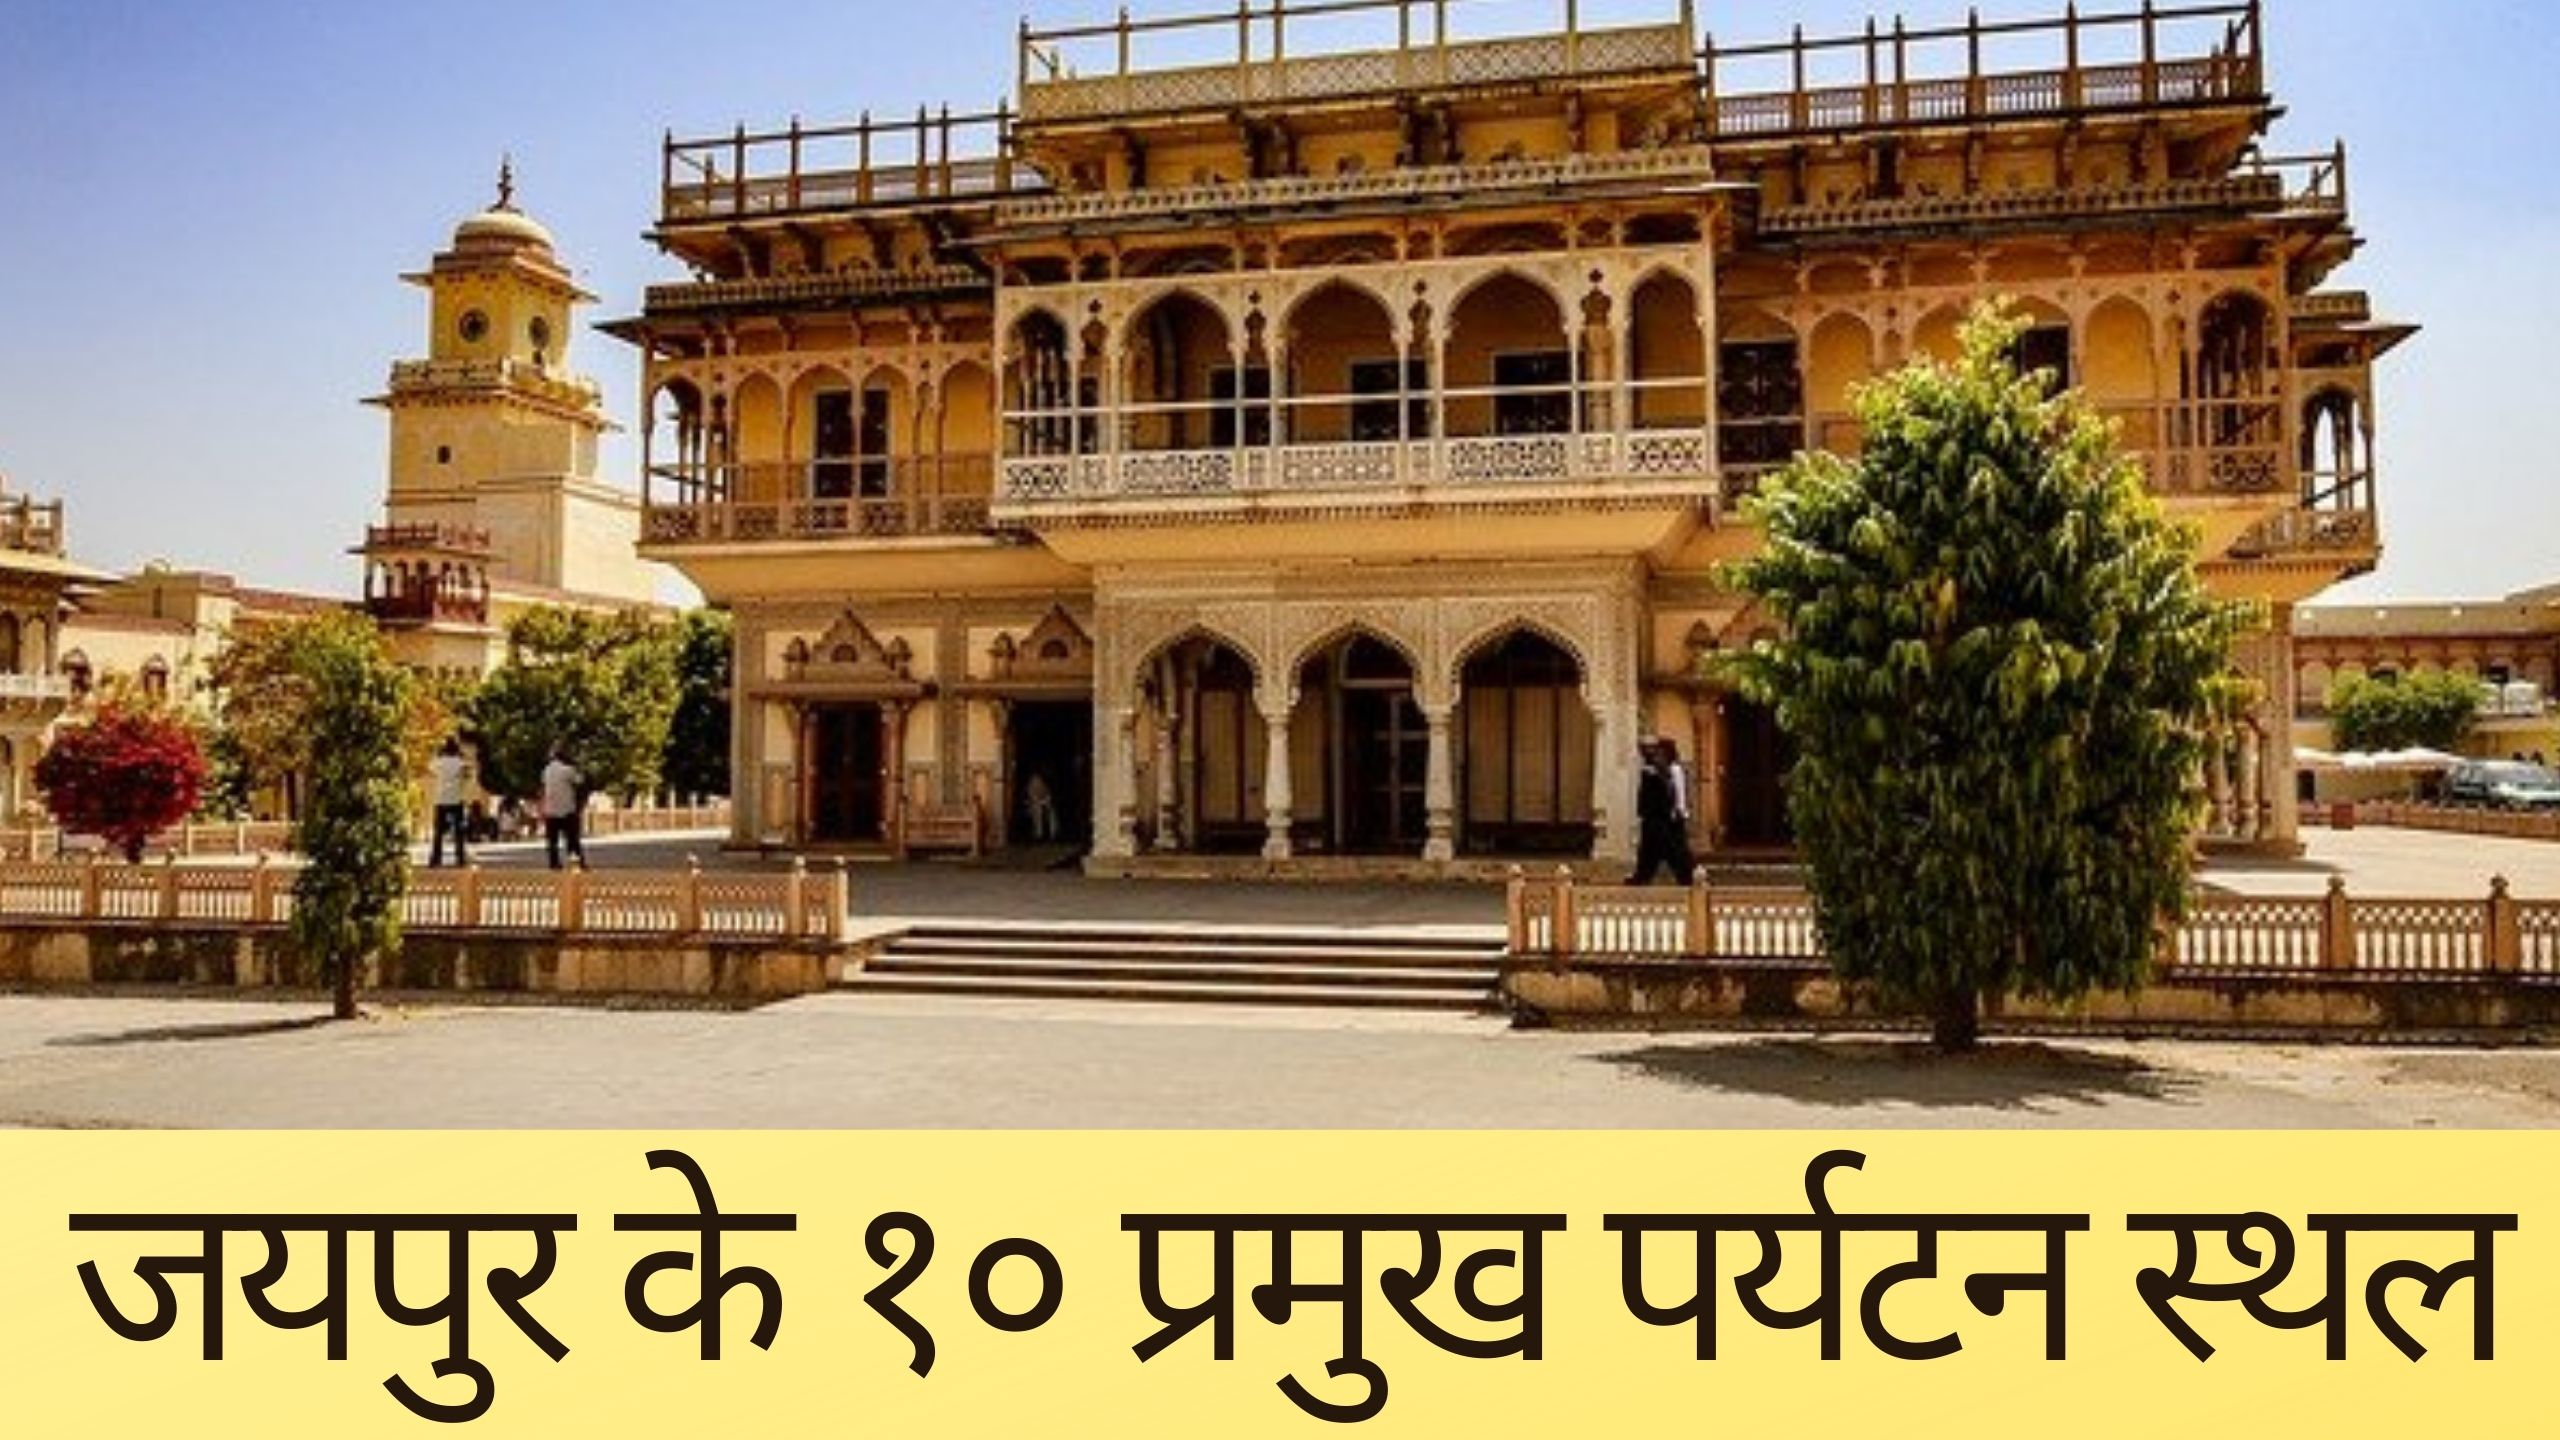 Top 10 Jaipur tourist places